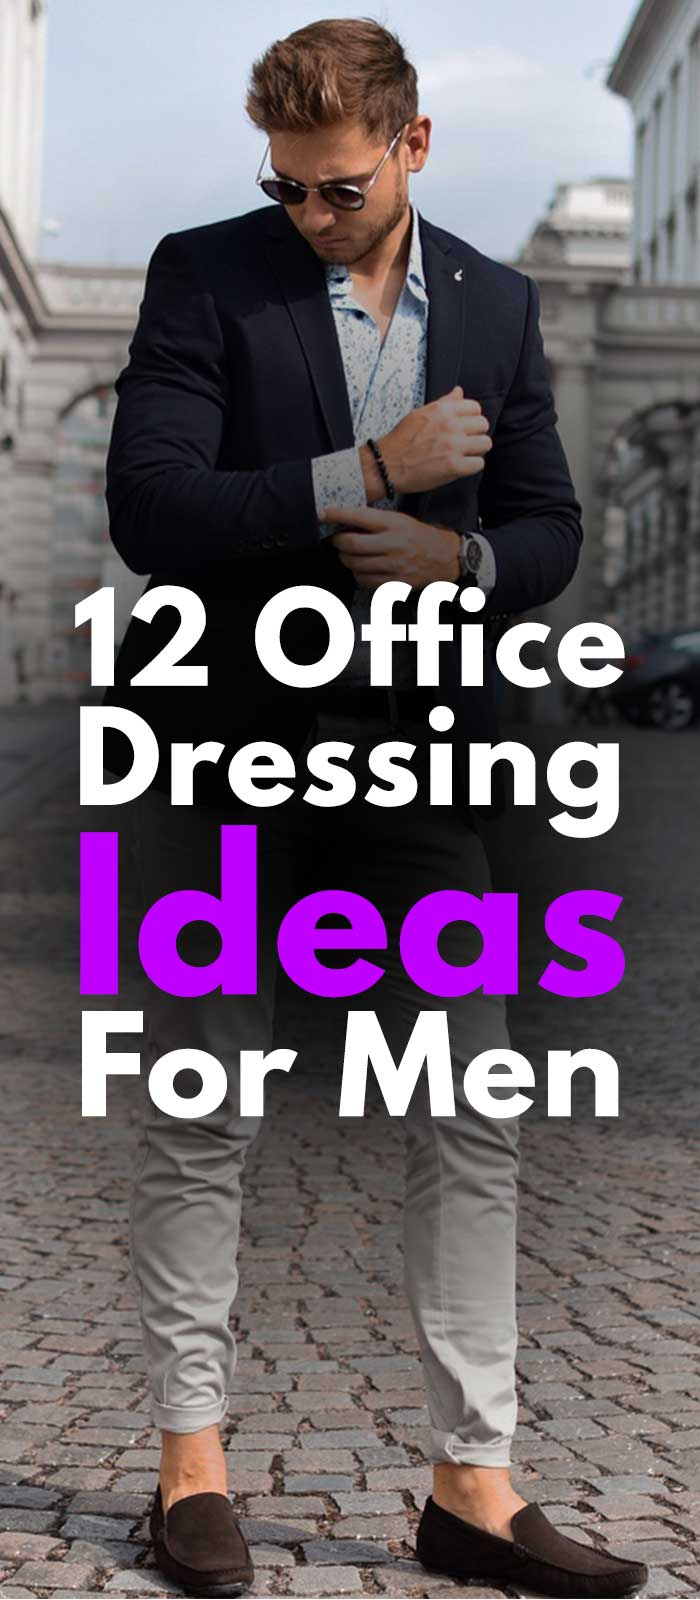 12 Office Dressing Ideas For Men